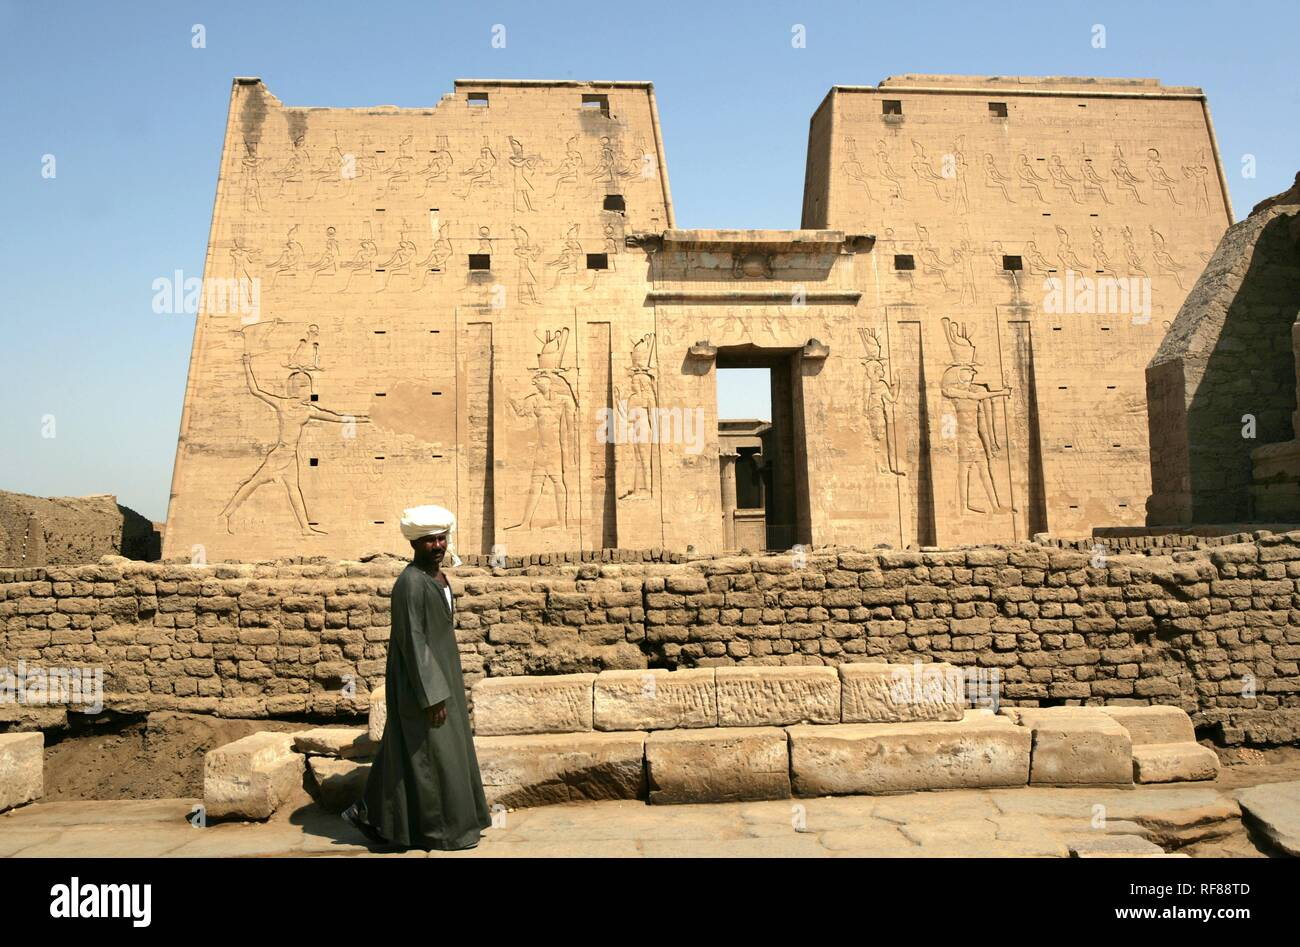 Guard, Temple of Edfu (dedicated to the falcon god Horus), Edfu, Egypt, Africa Stock Photo